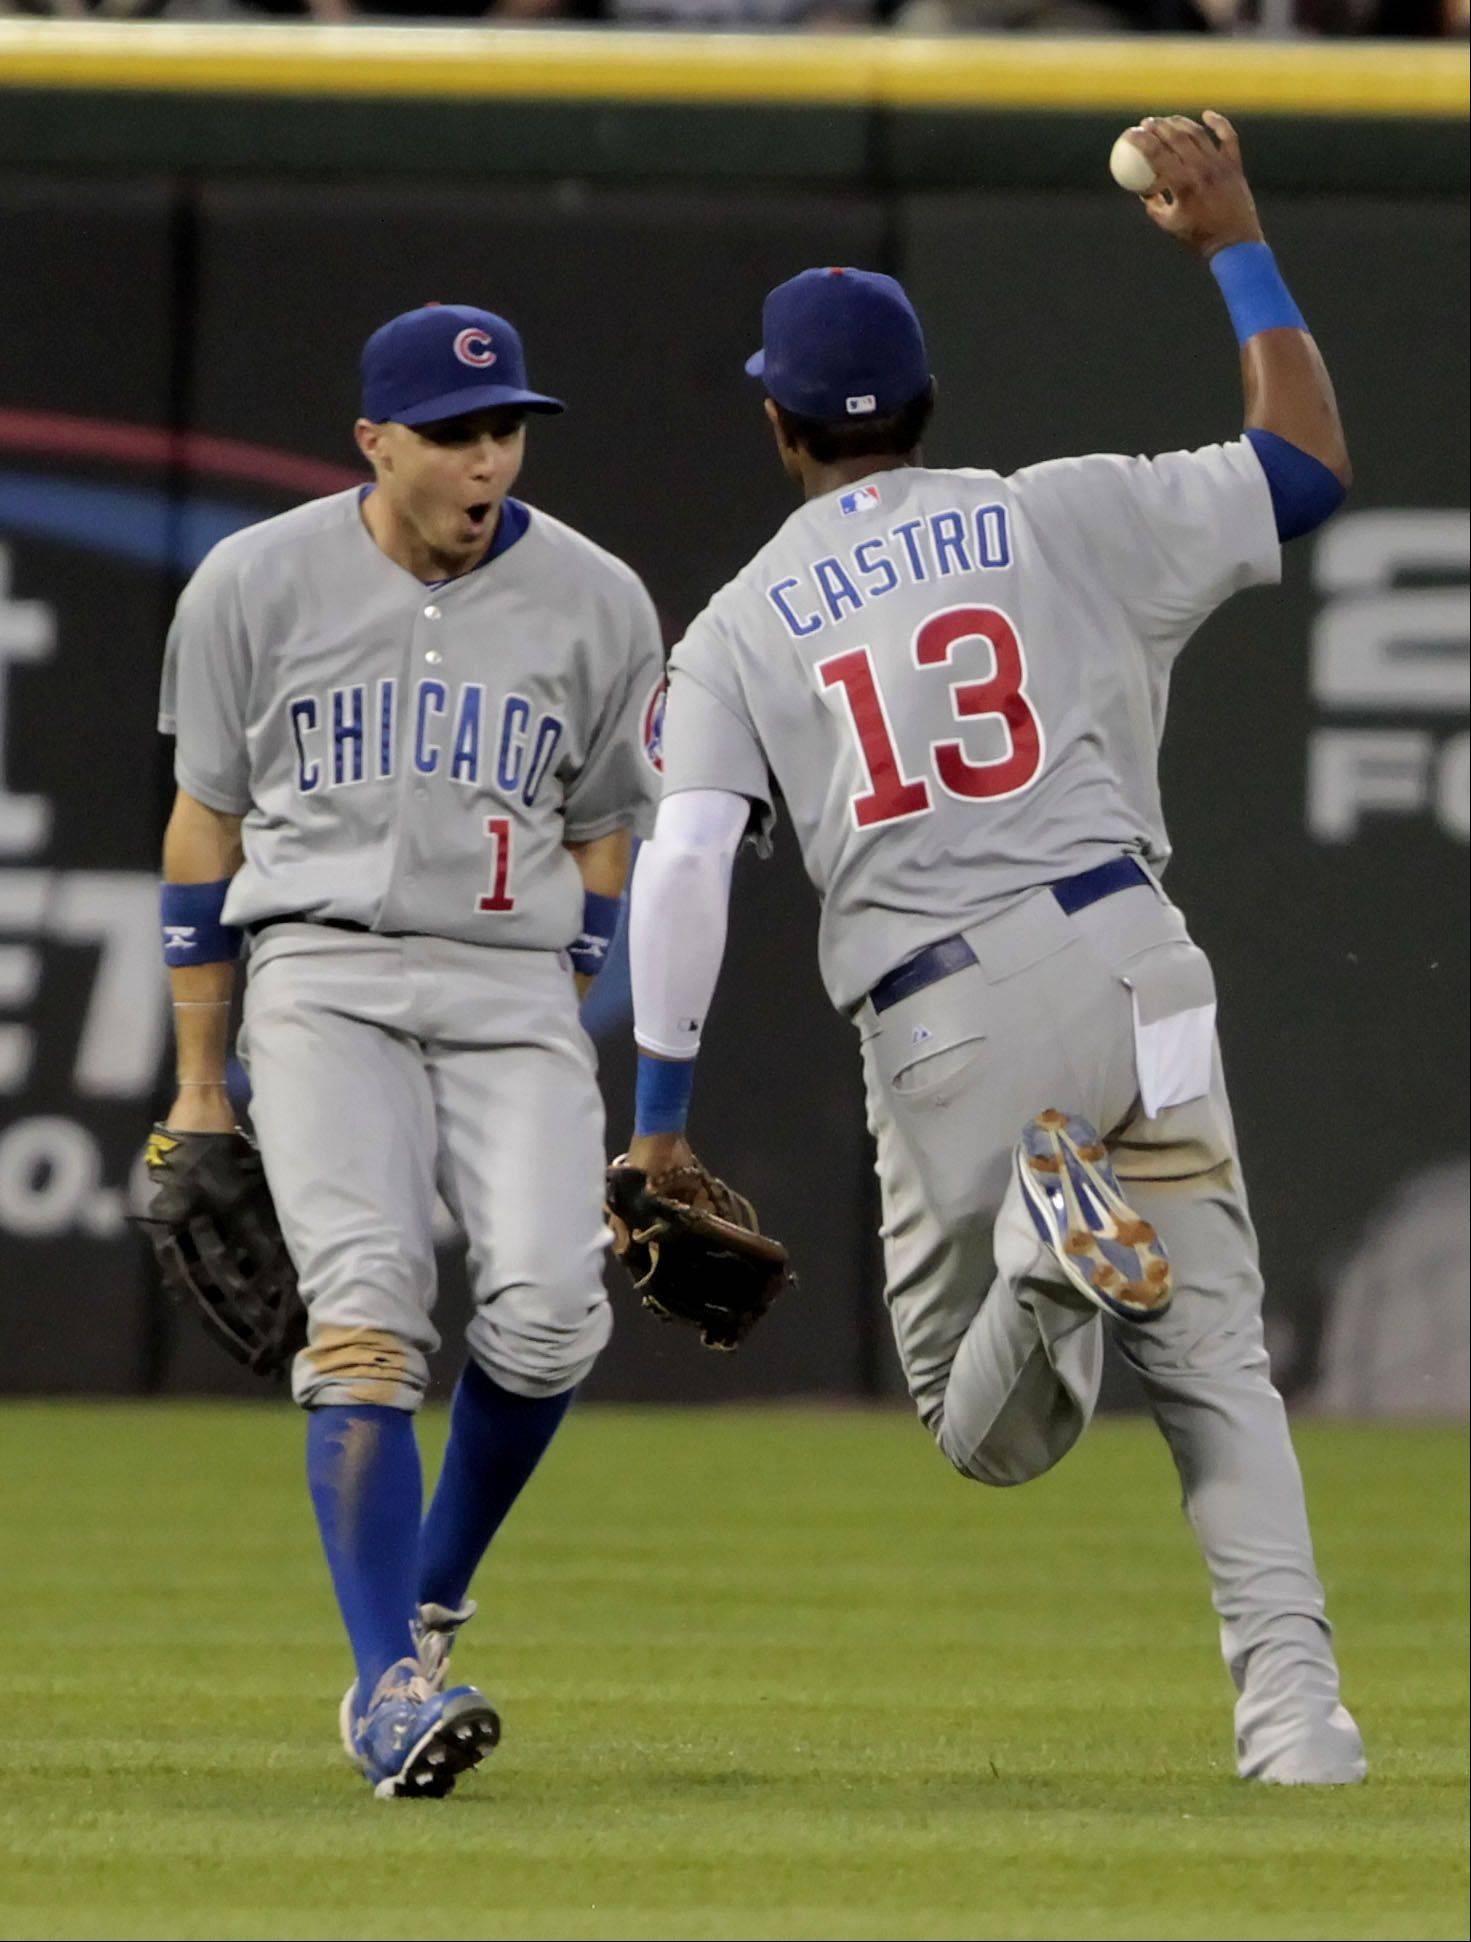 Chicago Cubs' Tony Campana, left, reacts after Starlin Castro made a barehand grab in the fifth inning .